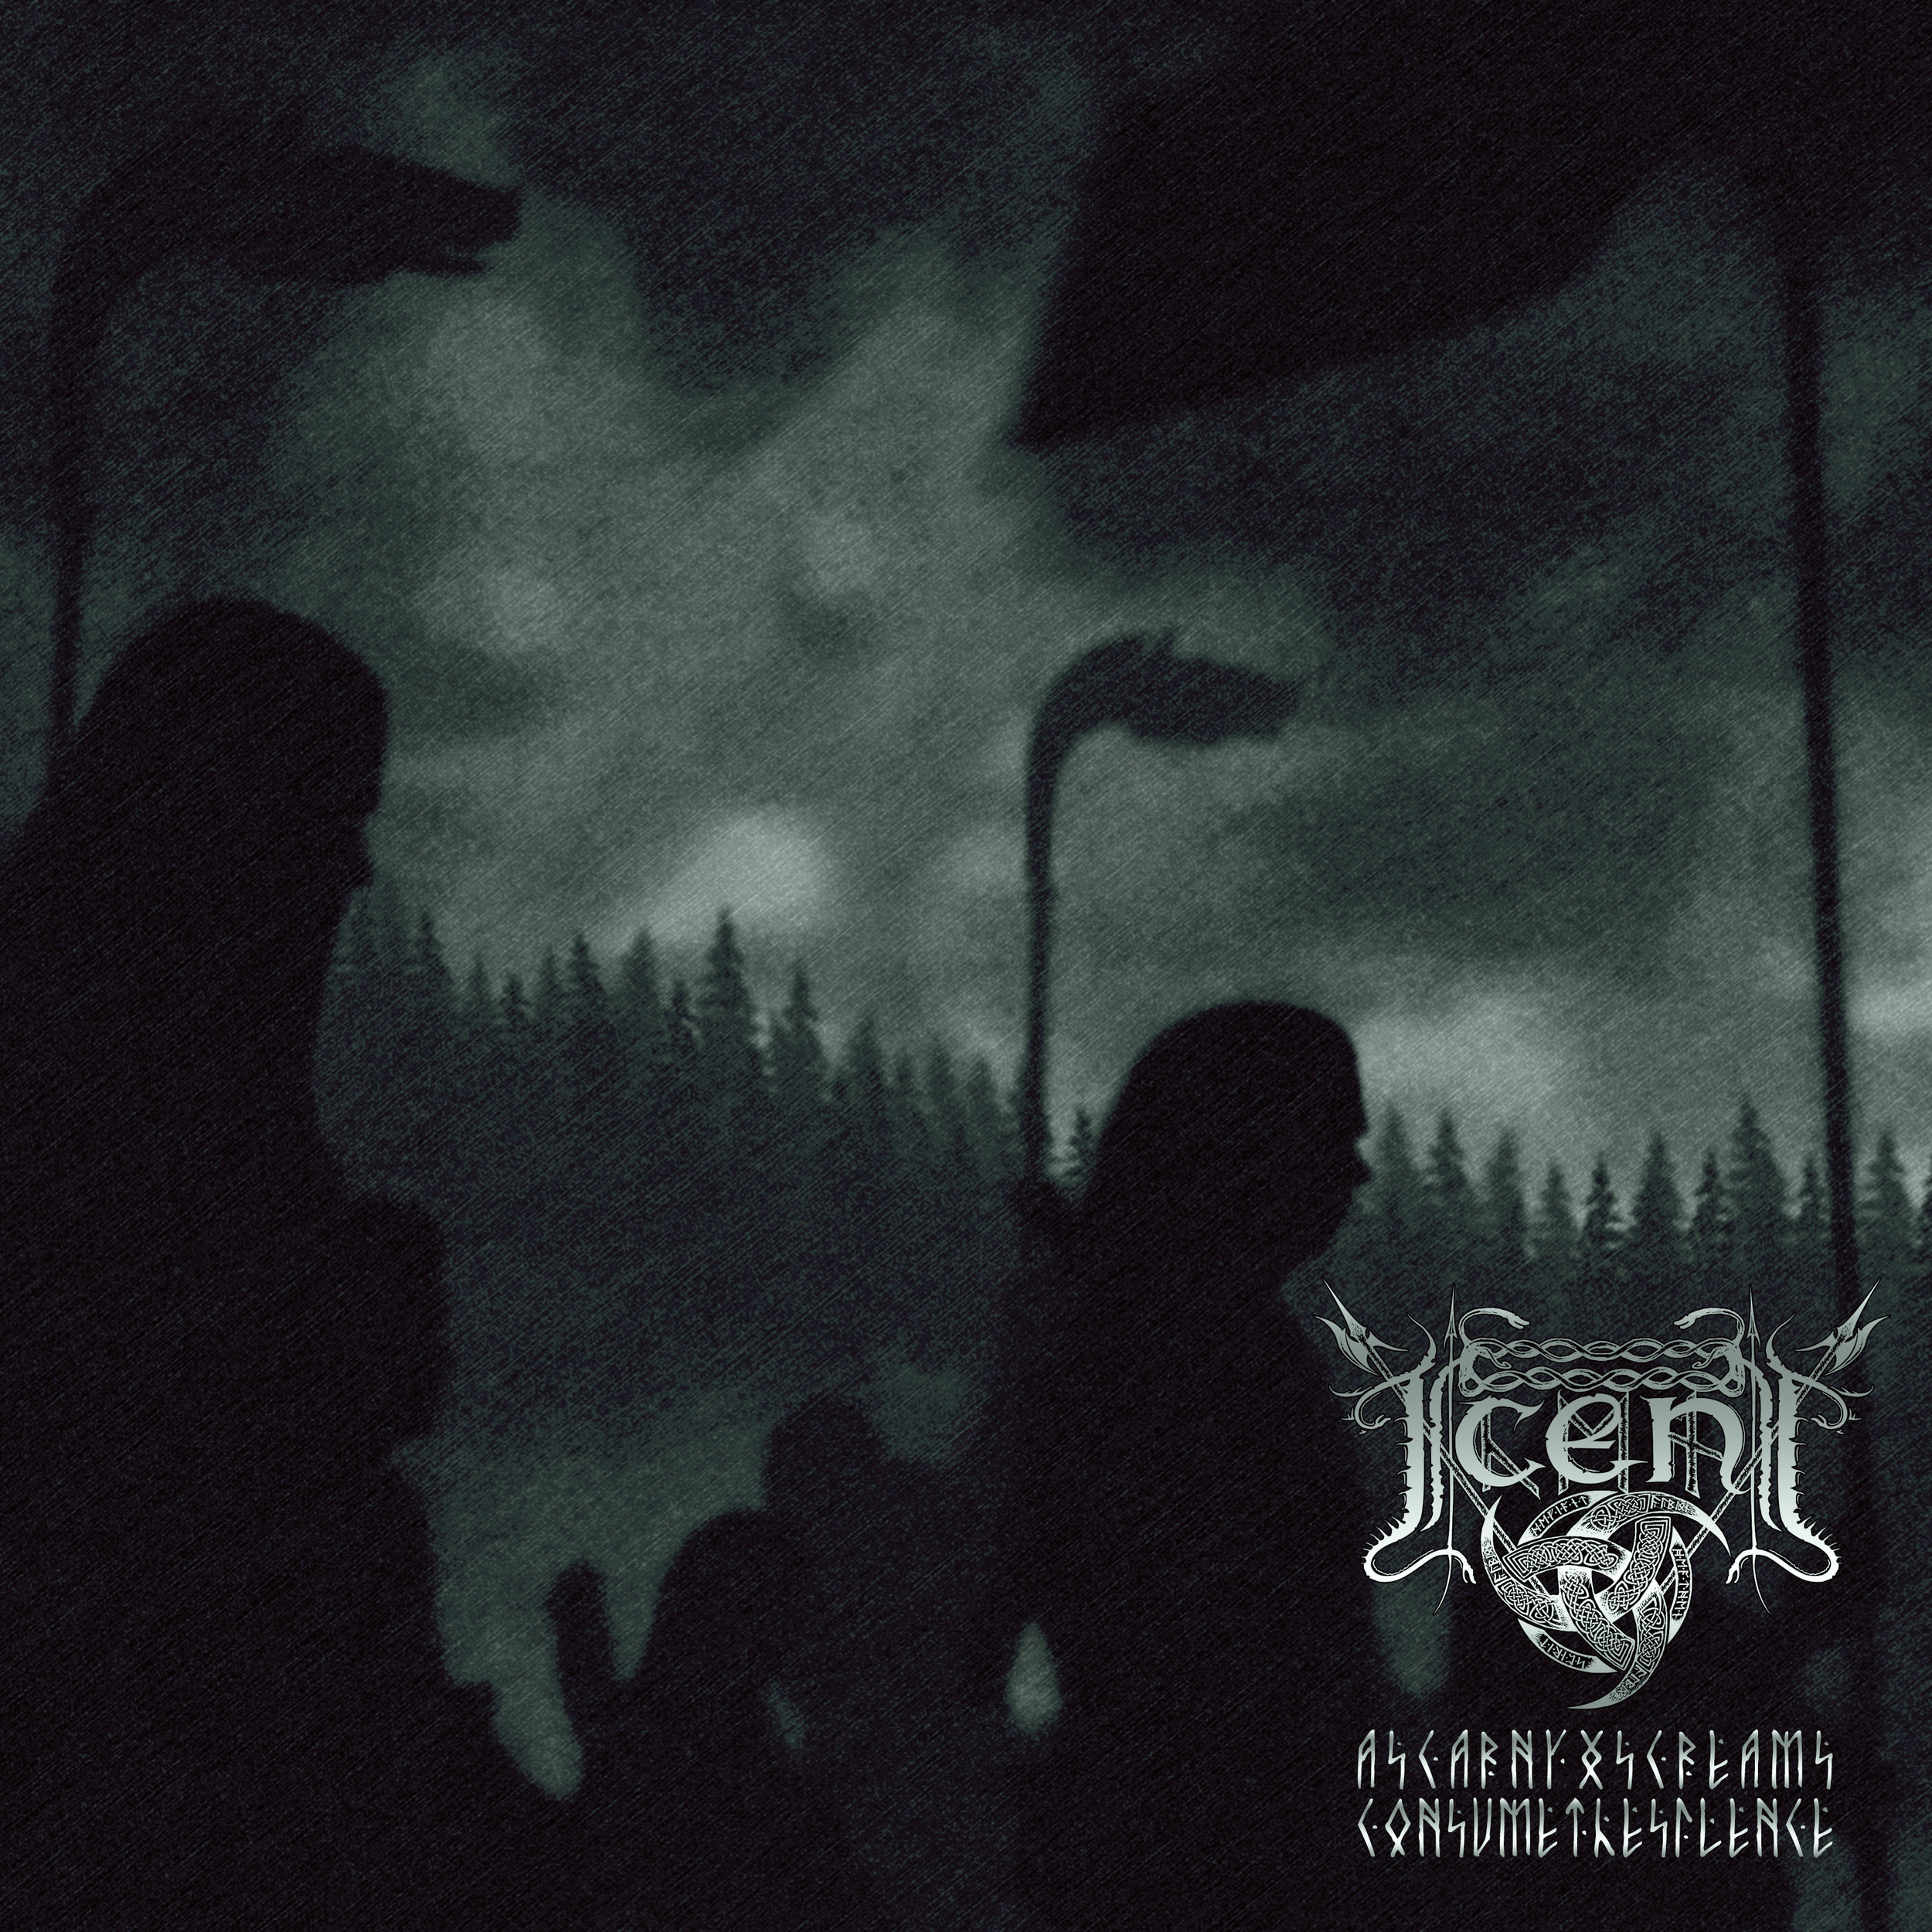 ICENI - As Carnyx Screams Consume The Silence - AEP0010 - LP(Original MR Release: 17.01.2005)